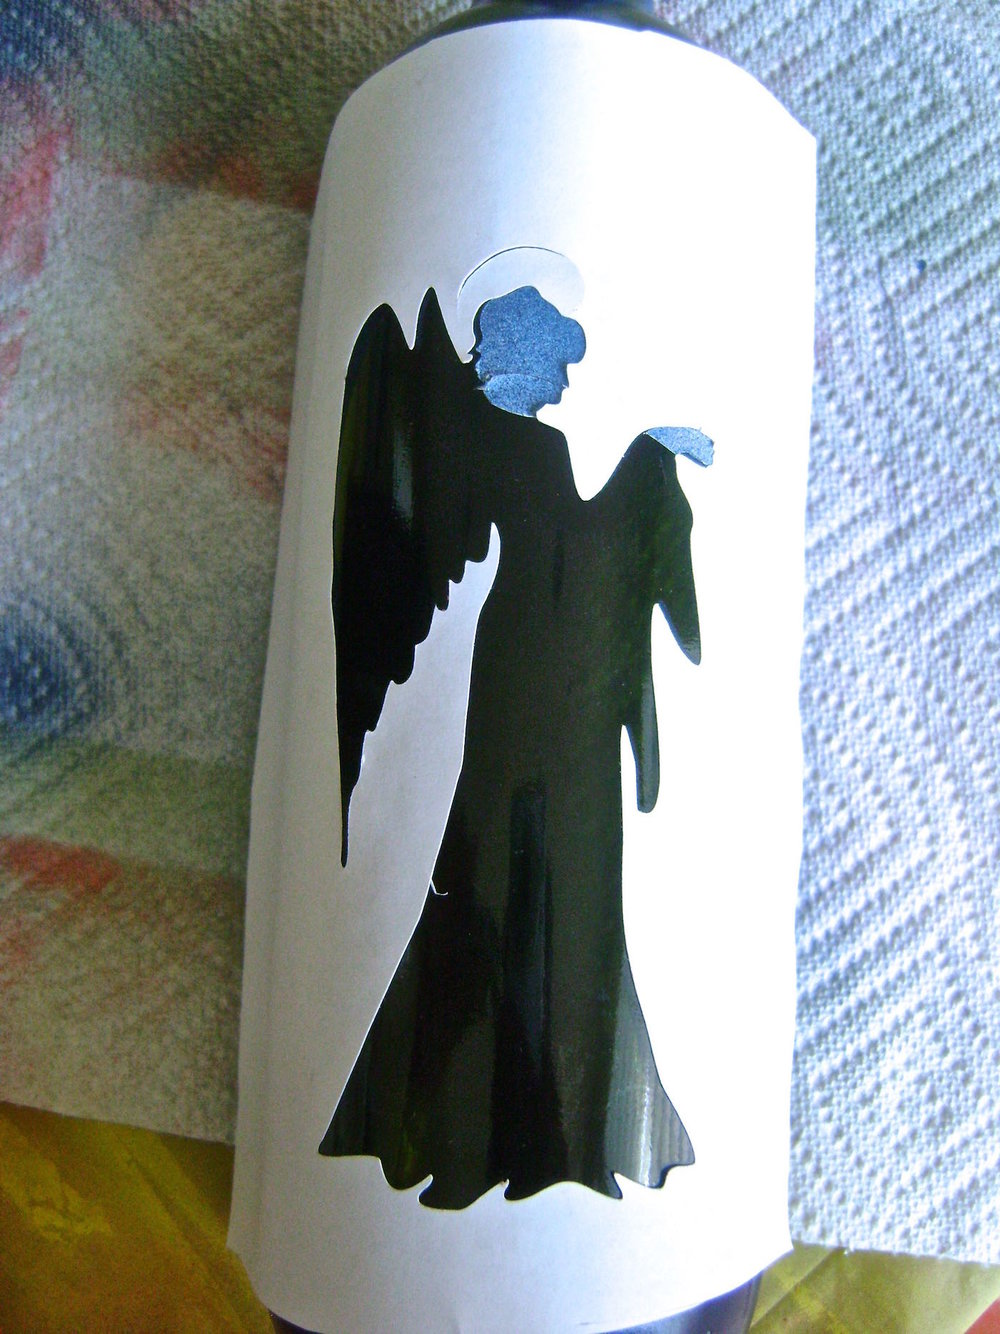 step 6 - Peel off the positive image cutting the stencil to leave the head and hand on the bottle.  Stick the negative stencil in position on the bottle.